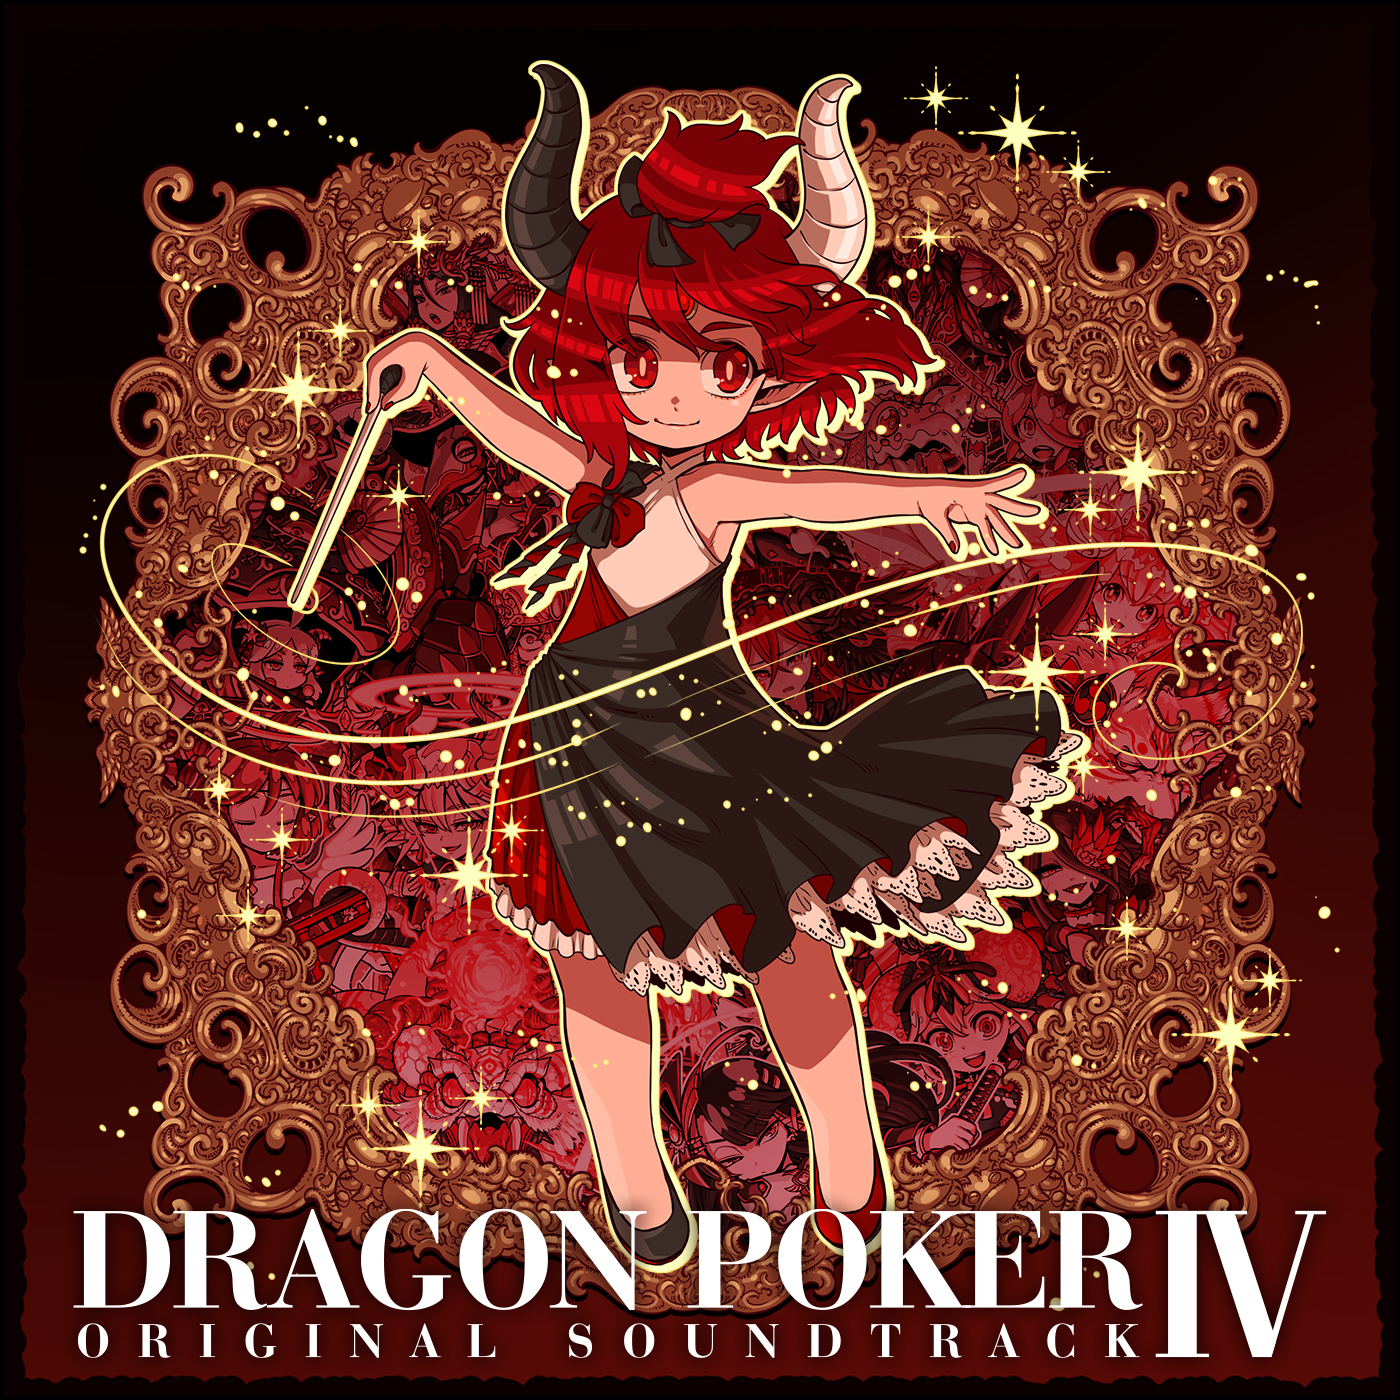 DRAGON POKER ORIGINAL SOUNDTRACK 4 Image